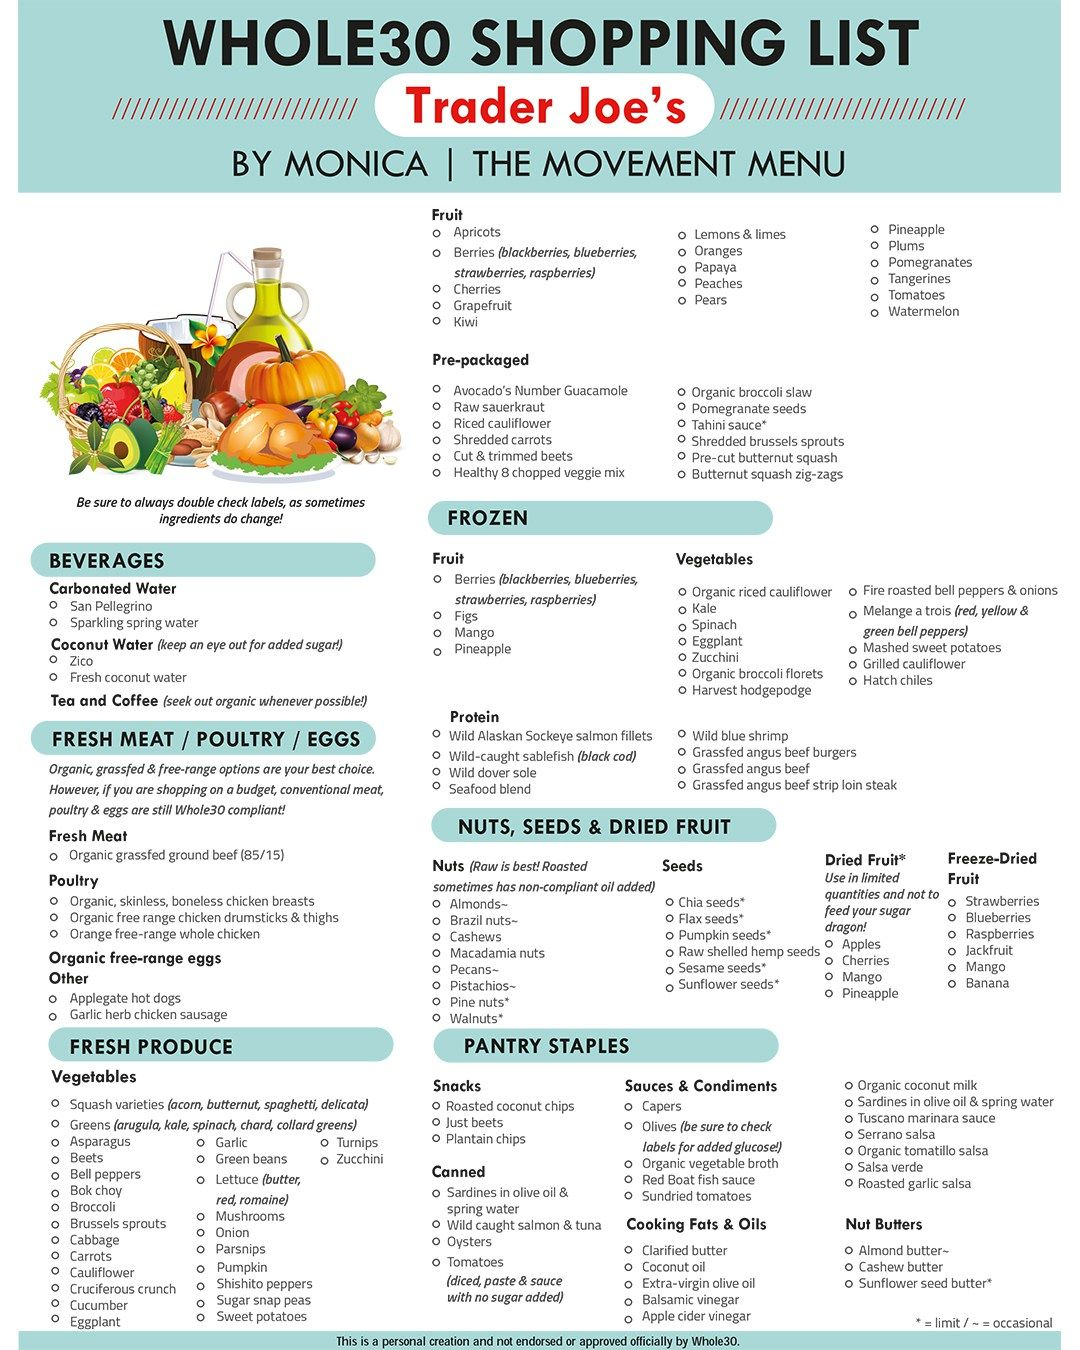 Whole30 Shopping List Recipes Whole 30 diet, Whole 30